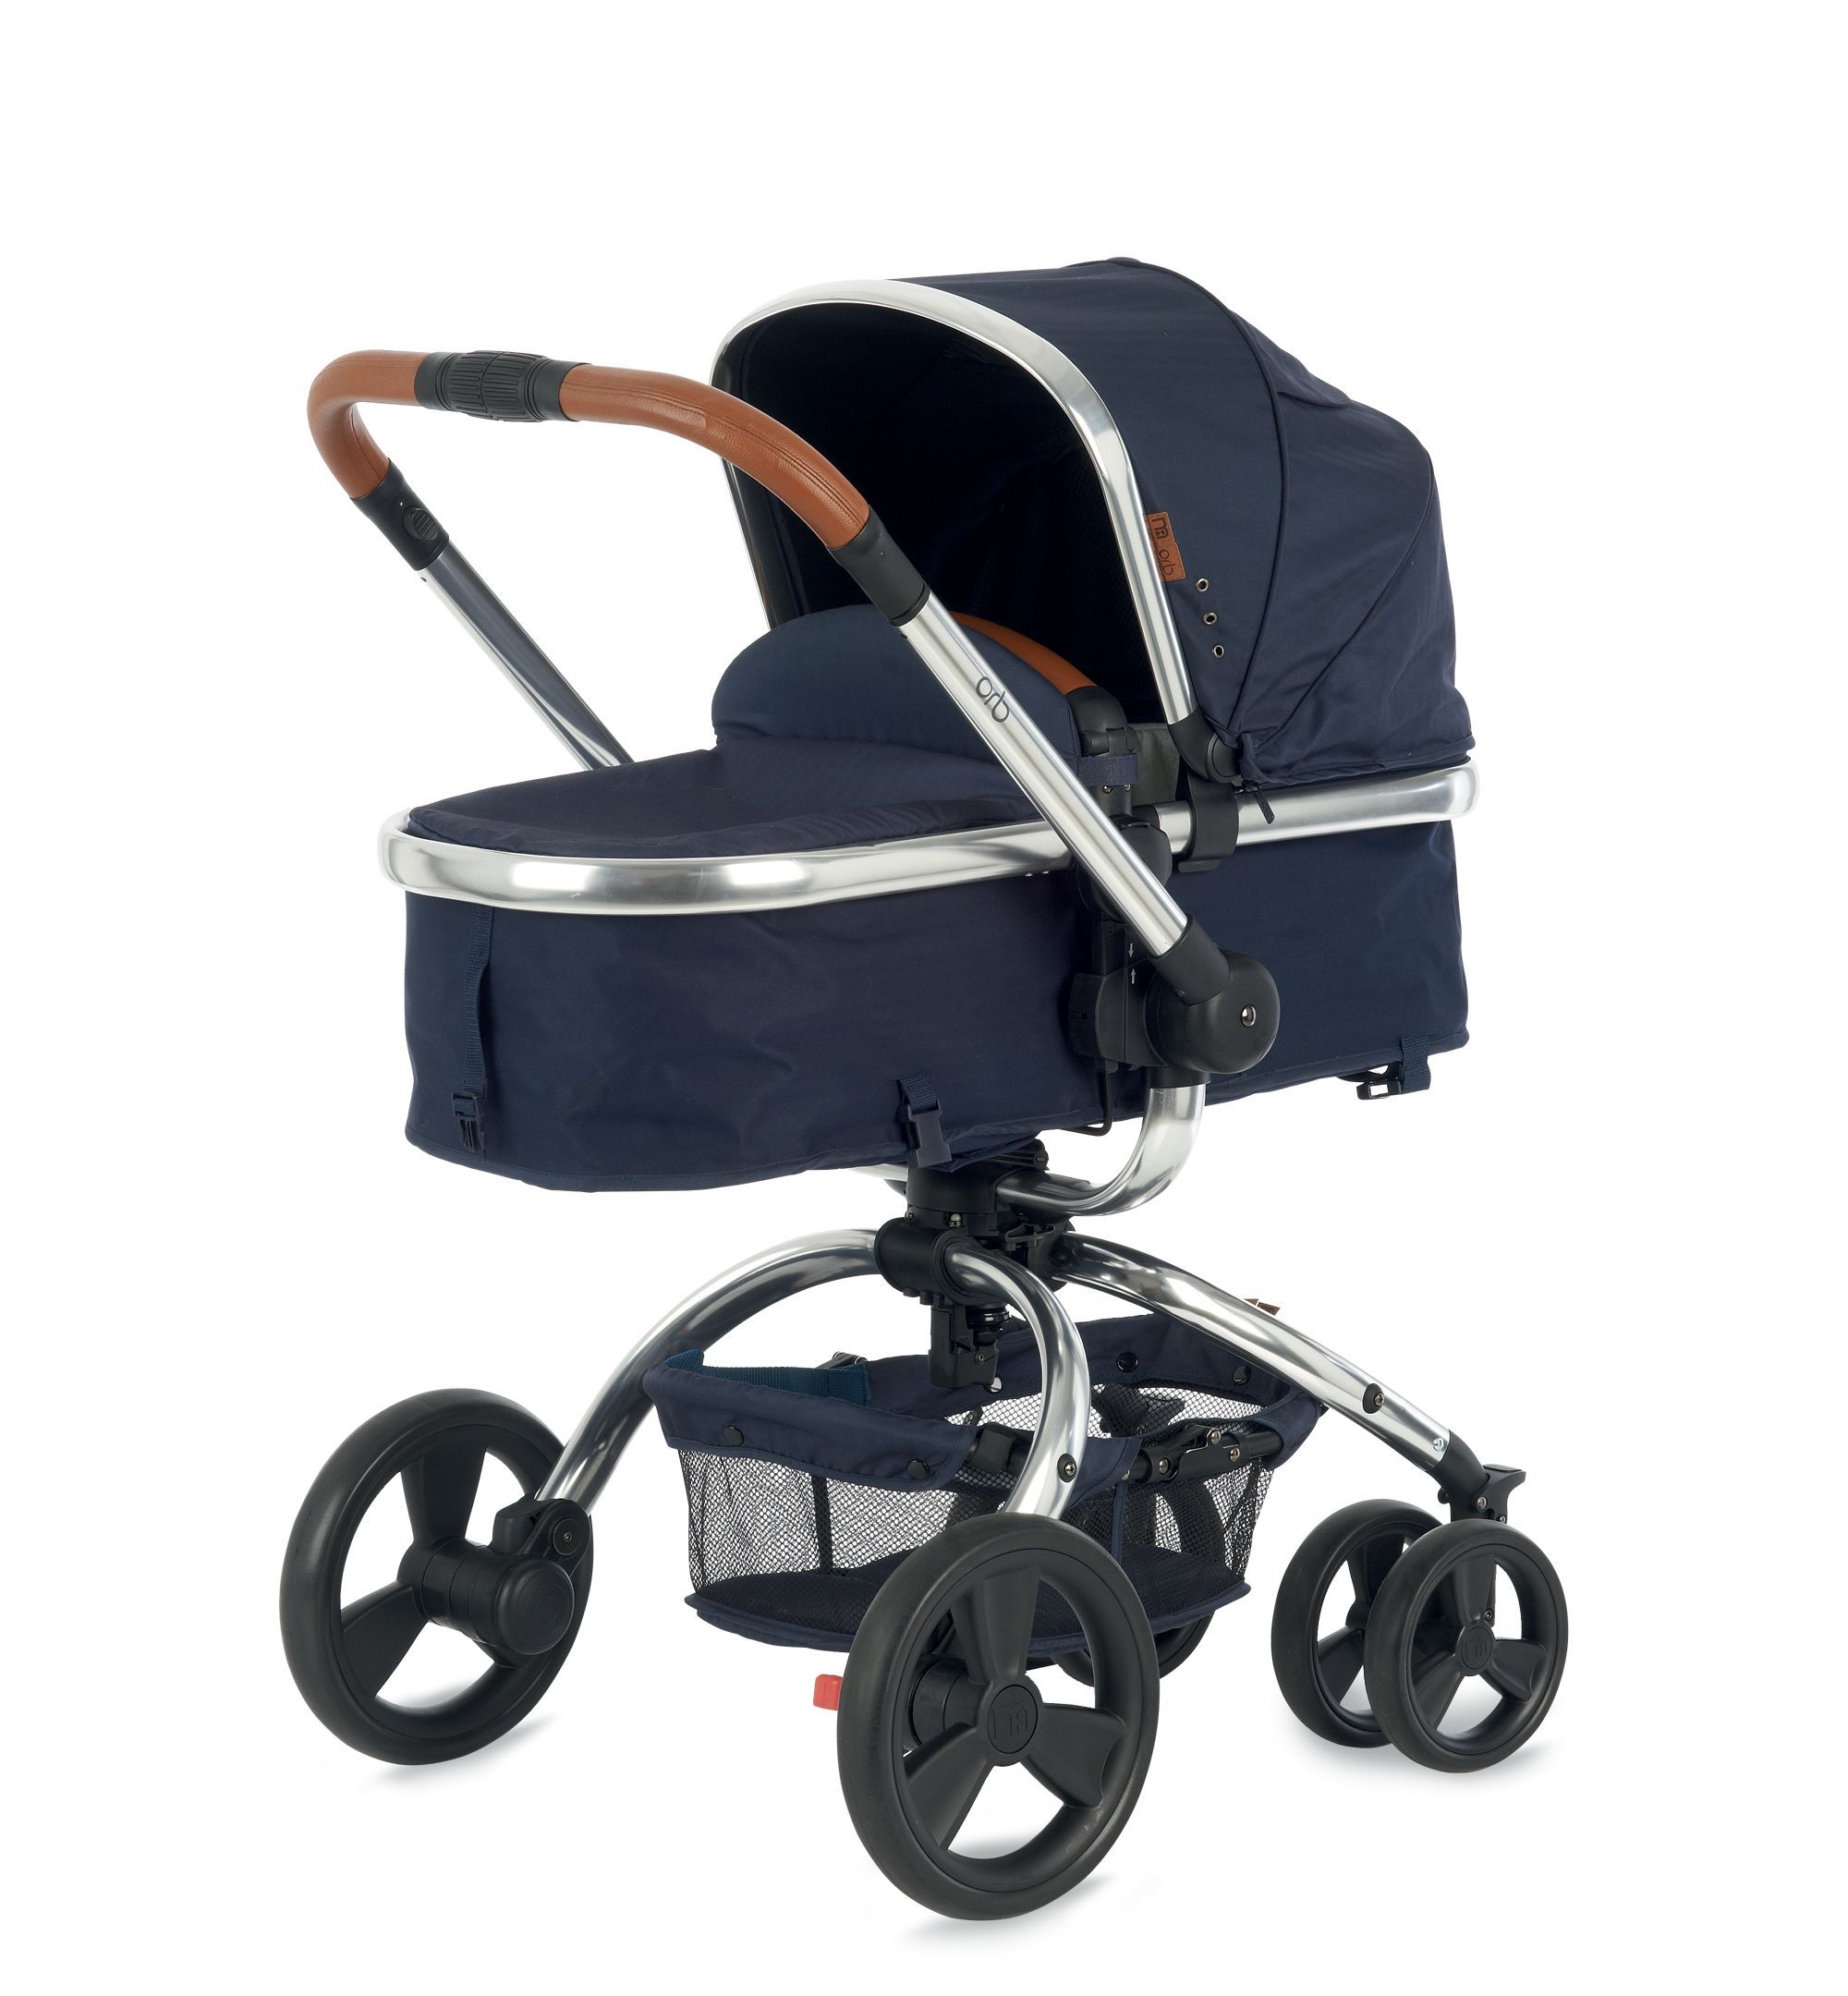 nursery bedding Prams, pushchairs, Baby, Baby prams